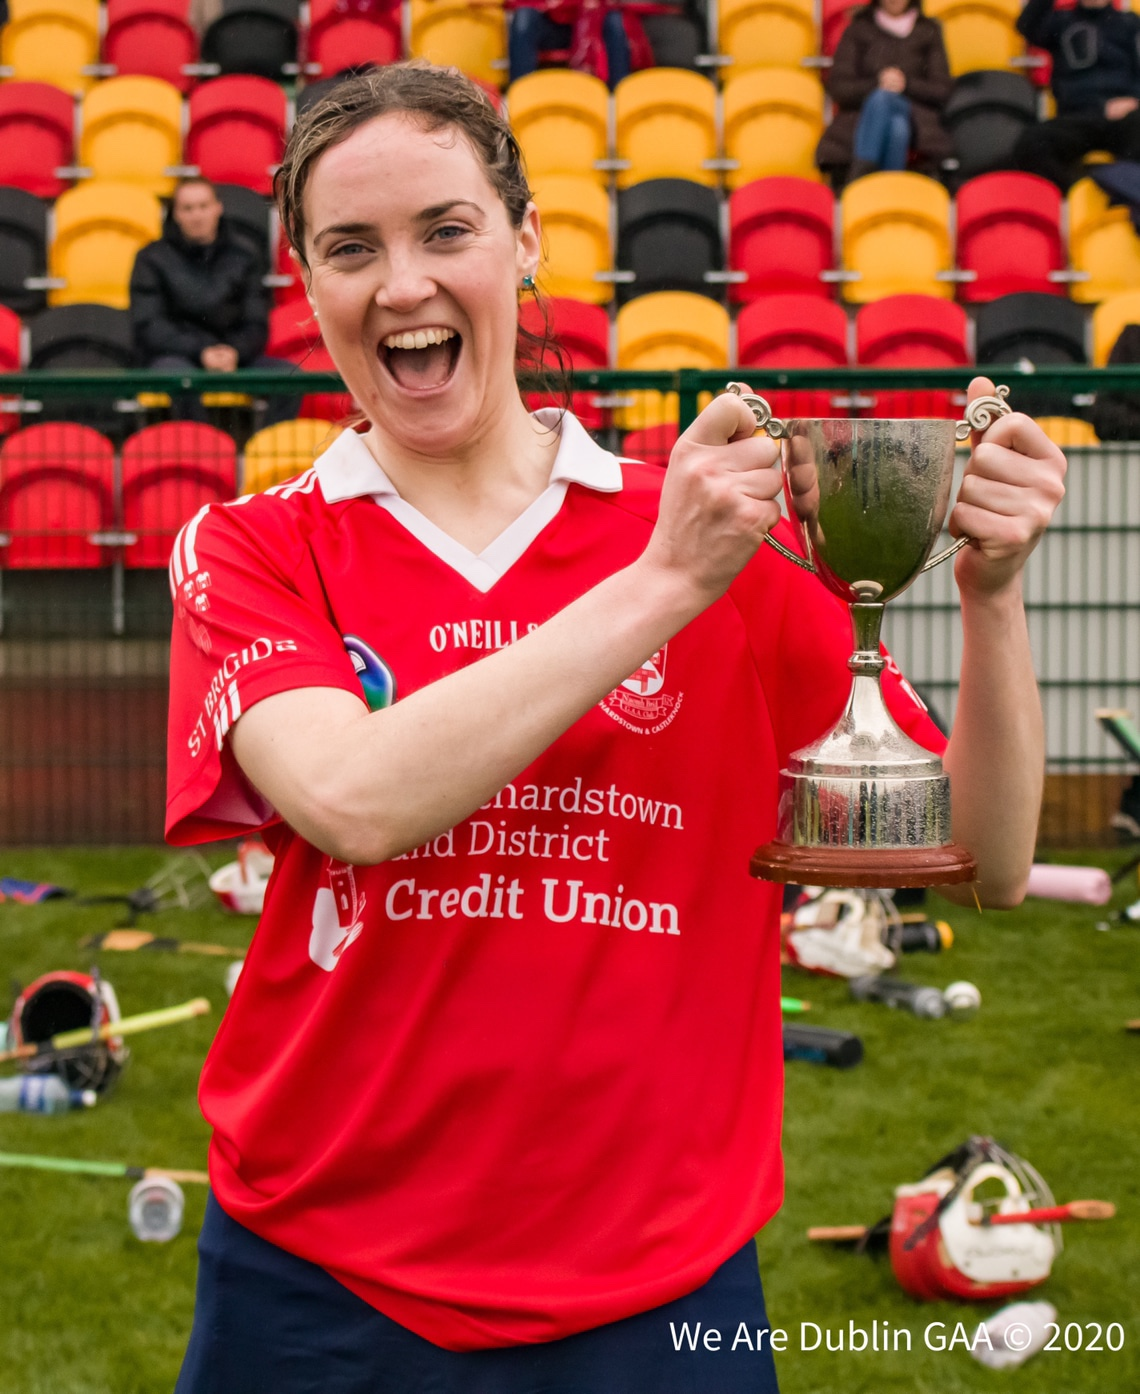 The St Brigids Camogie Captain raises the Junior 3 cup after her side beat Ballyboden St Endas in the final.